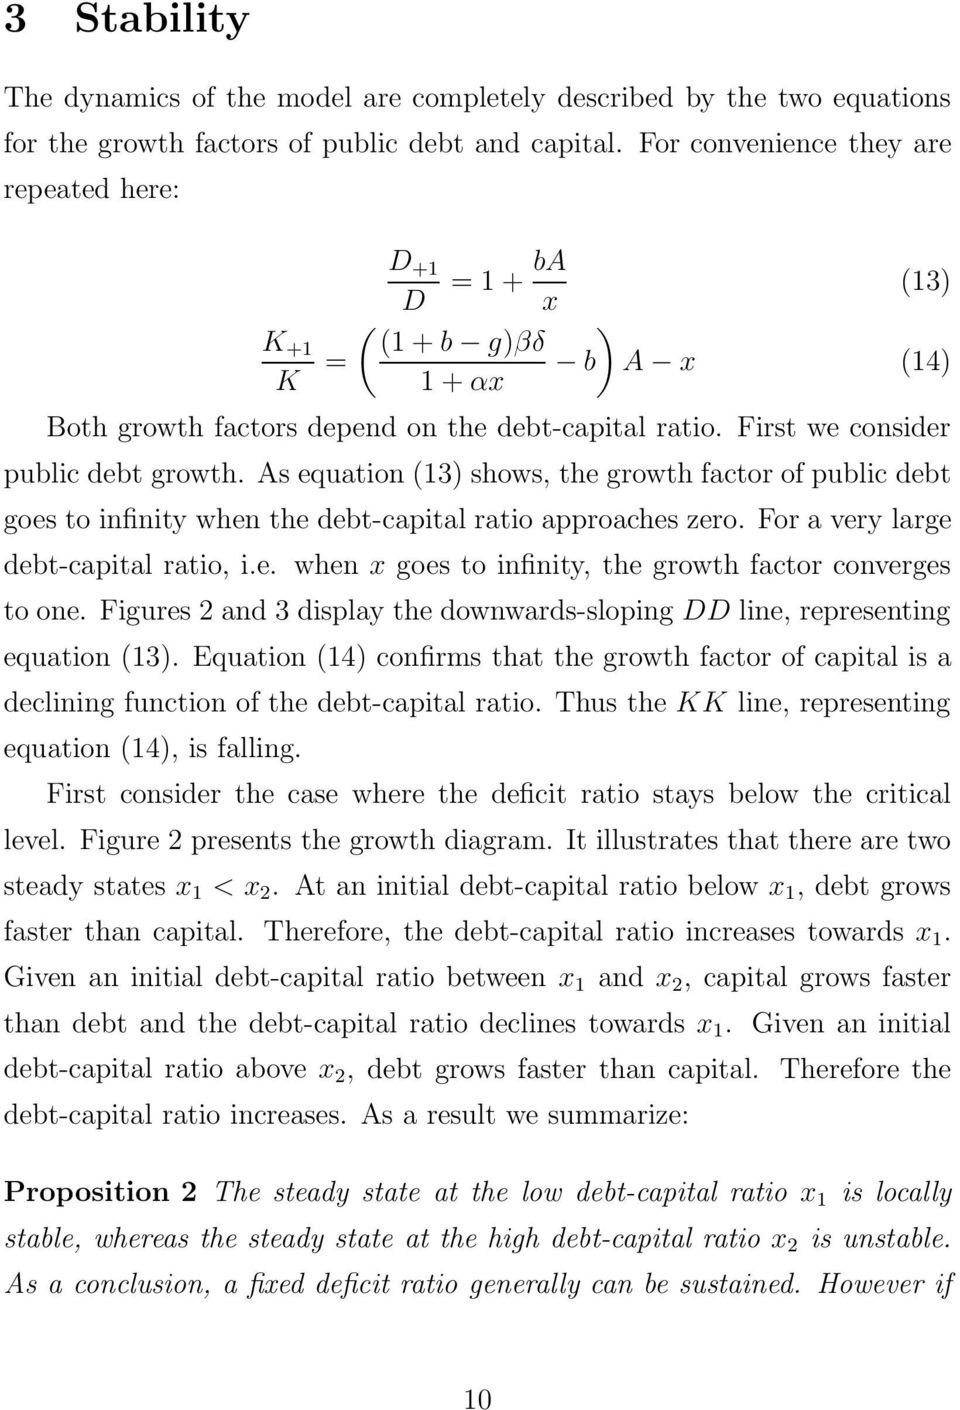 As equation (13) shows, the growth factor of public debt goes to infinity when the debt-capital ratio approaches zero. For a very large debt-capital ratio, i.e. when x goes to infinity, the growth factor converges to one.